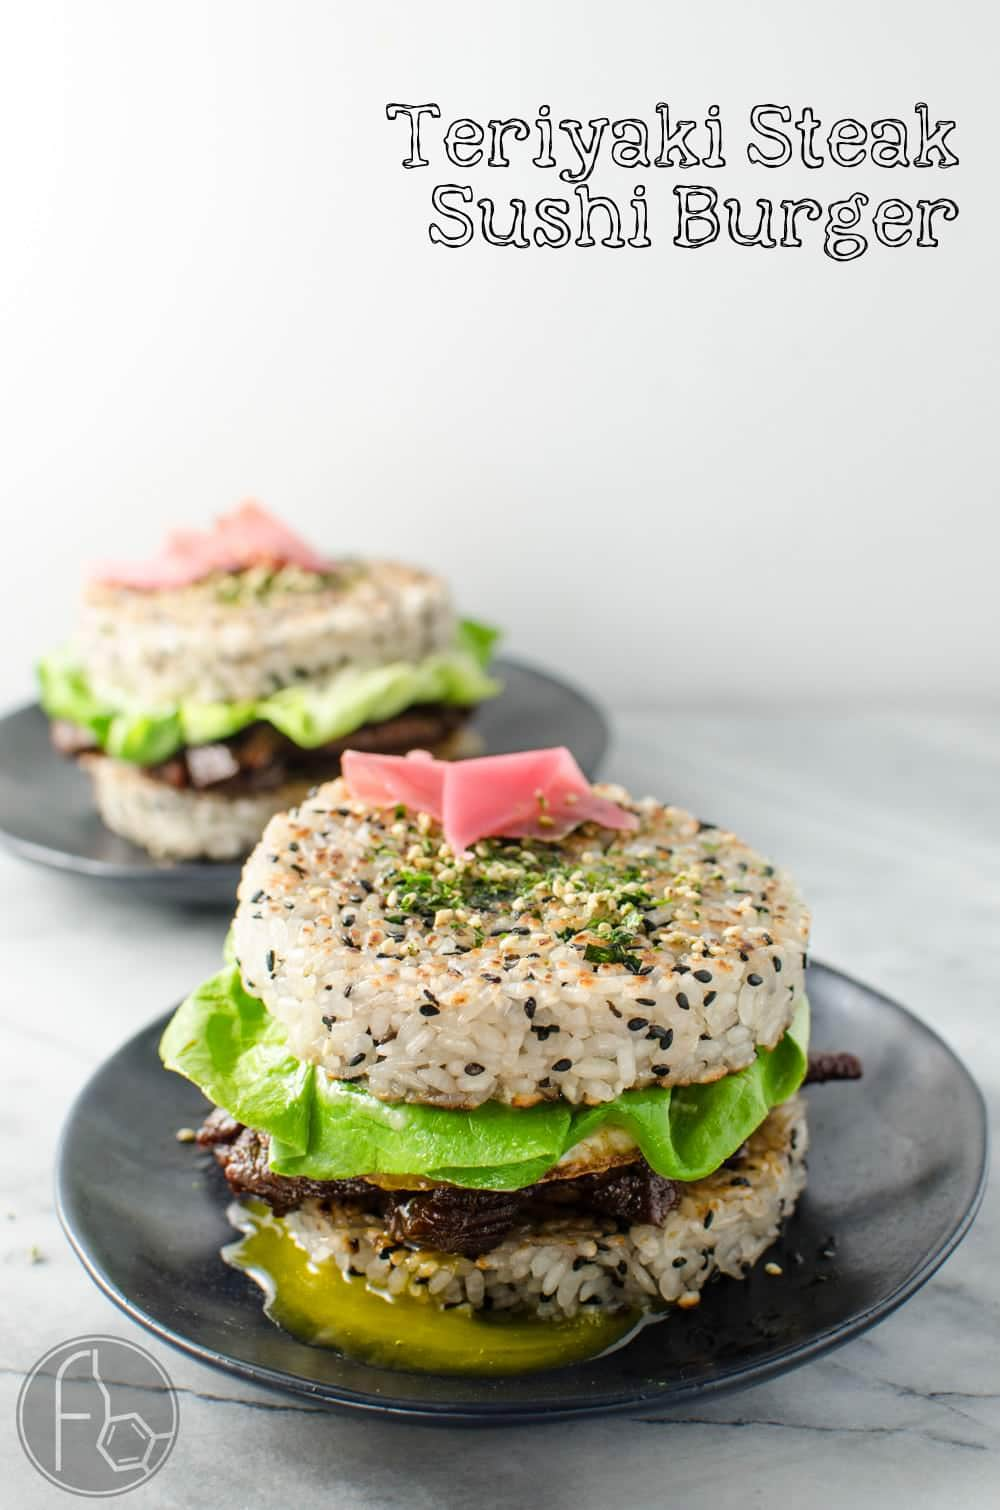 Teriyaki Steak Sushi Burger | The Flavor Bender